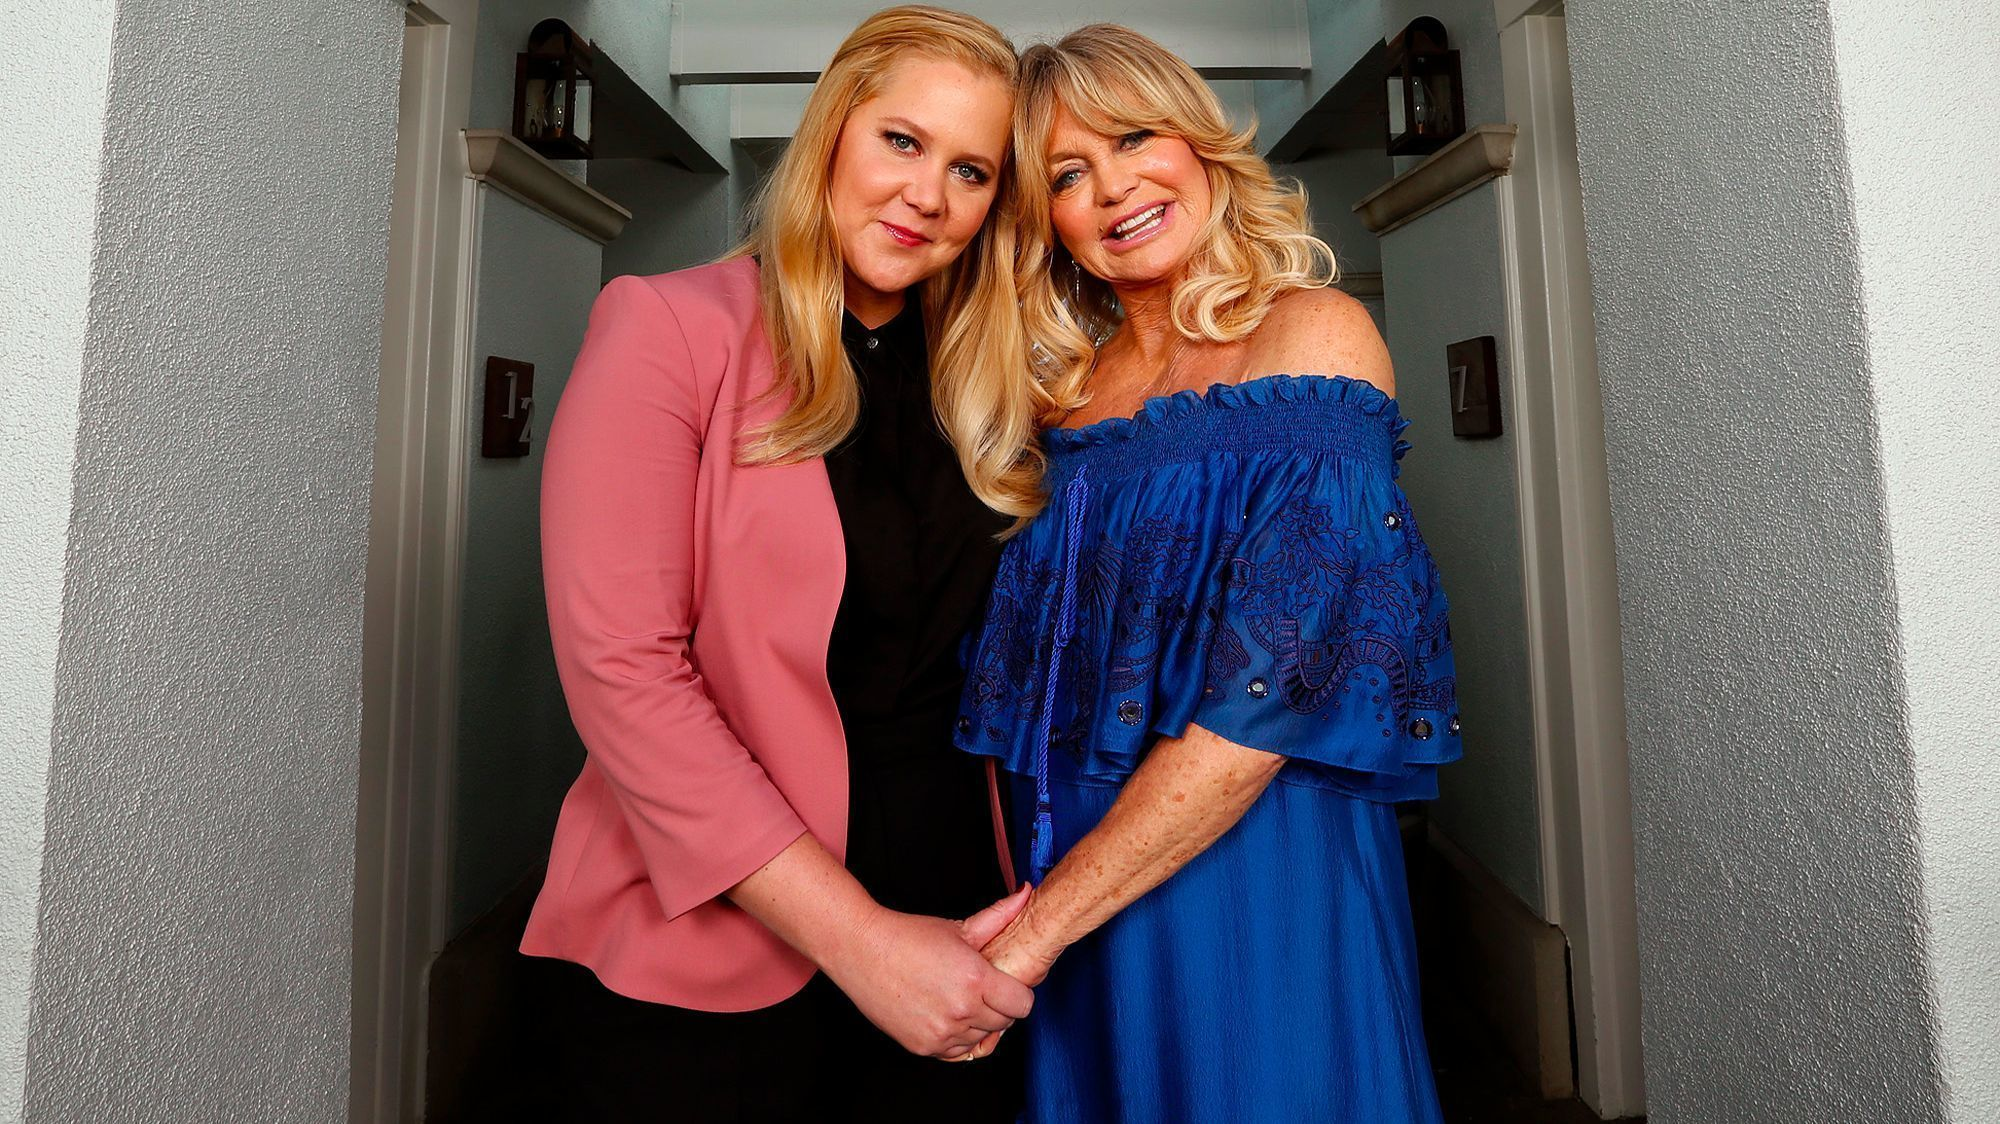 Snatched Pair Amy Schumer And Goldie Hawn Enjoy An